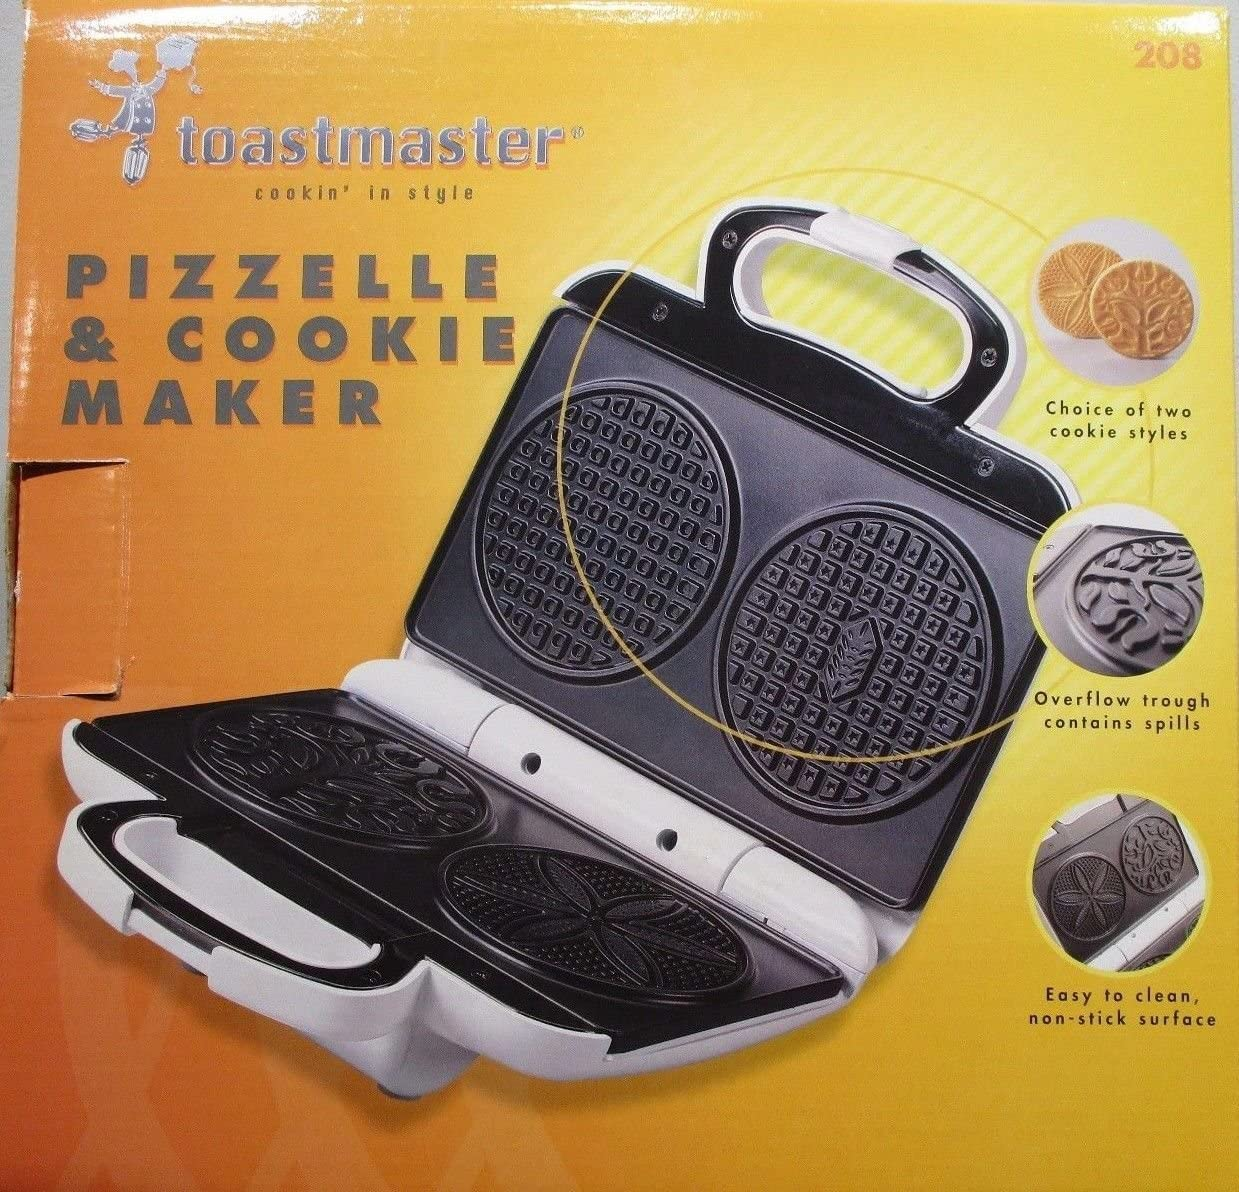 Toastmaster Discount is also underway Pizzelle and Cookie Maker Directly managed store